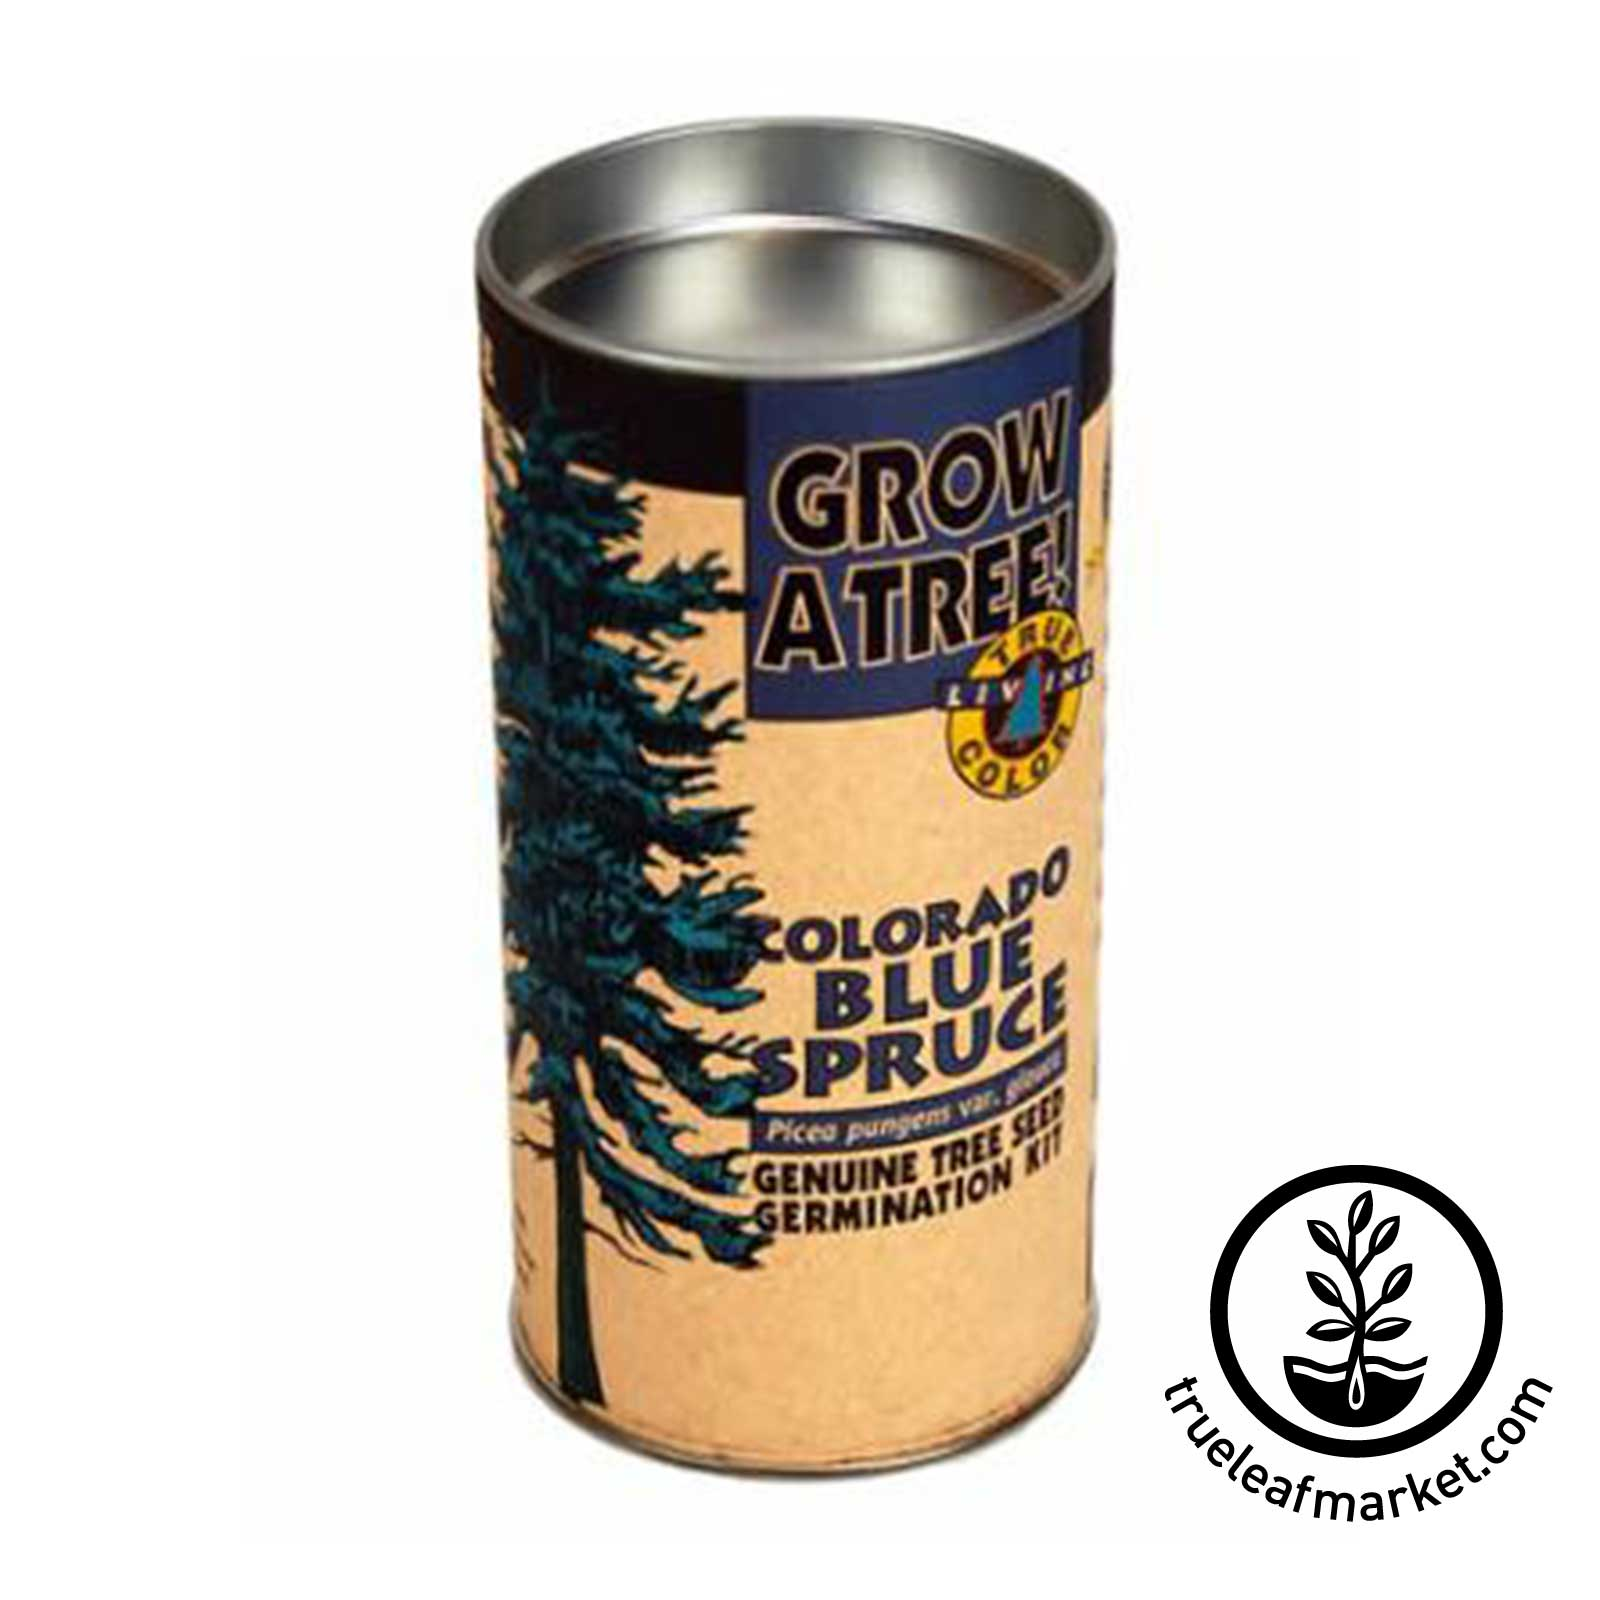 Colorado Blue Spruce Tree Kit  tree, kit, trees, colorado, blue, spruce, seed